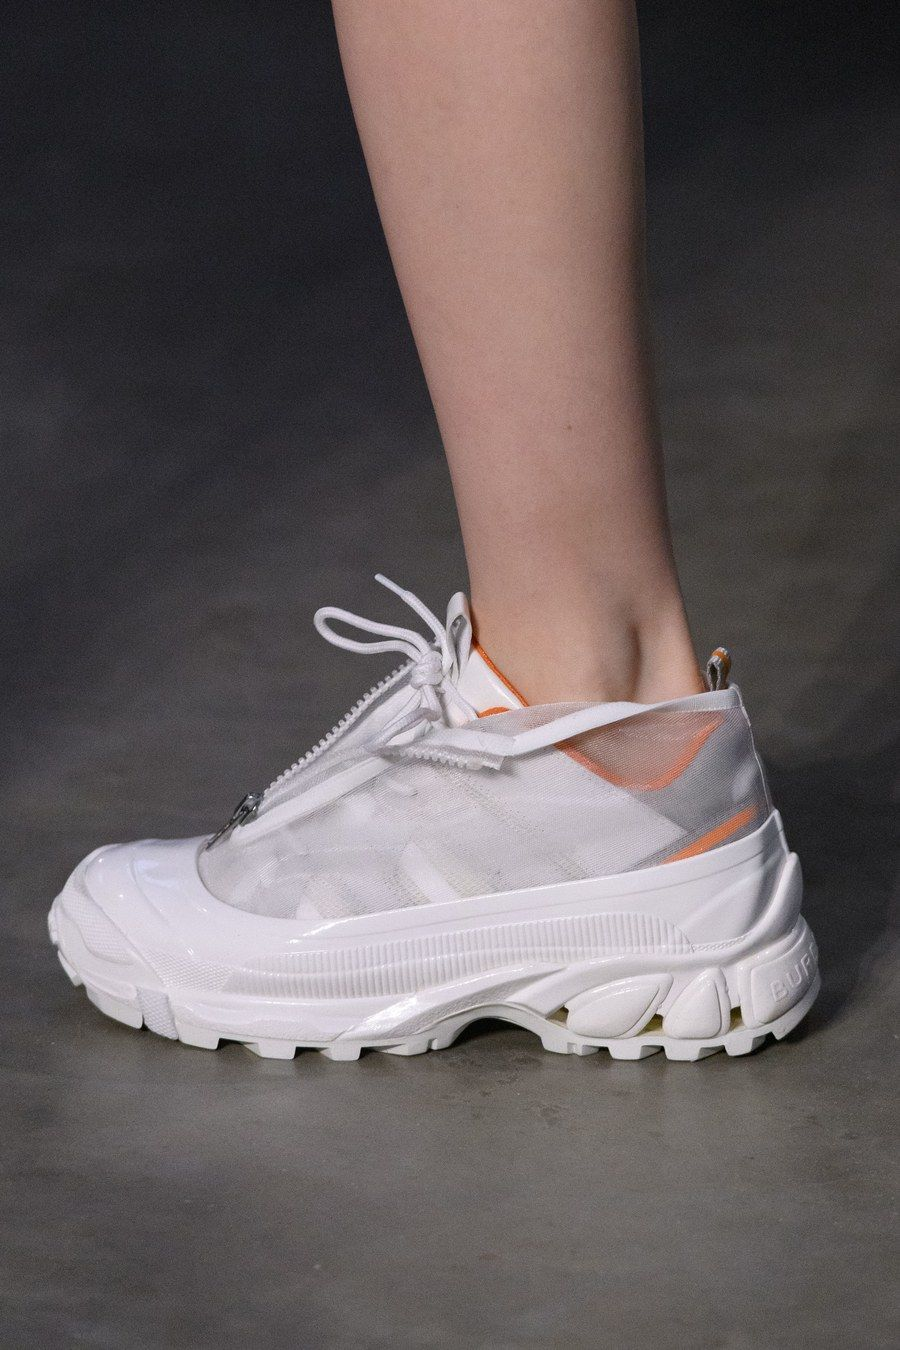 Trending shoes, Sneakers, Sneakers fashion